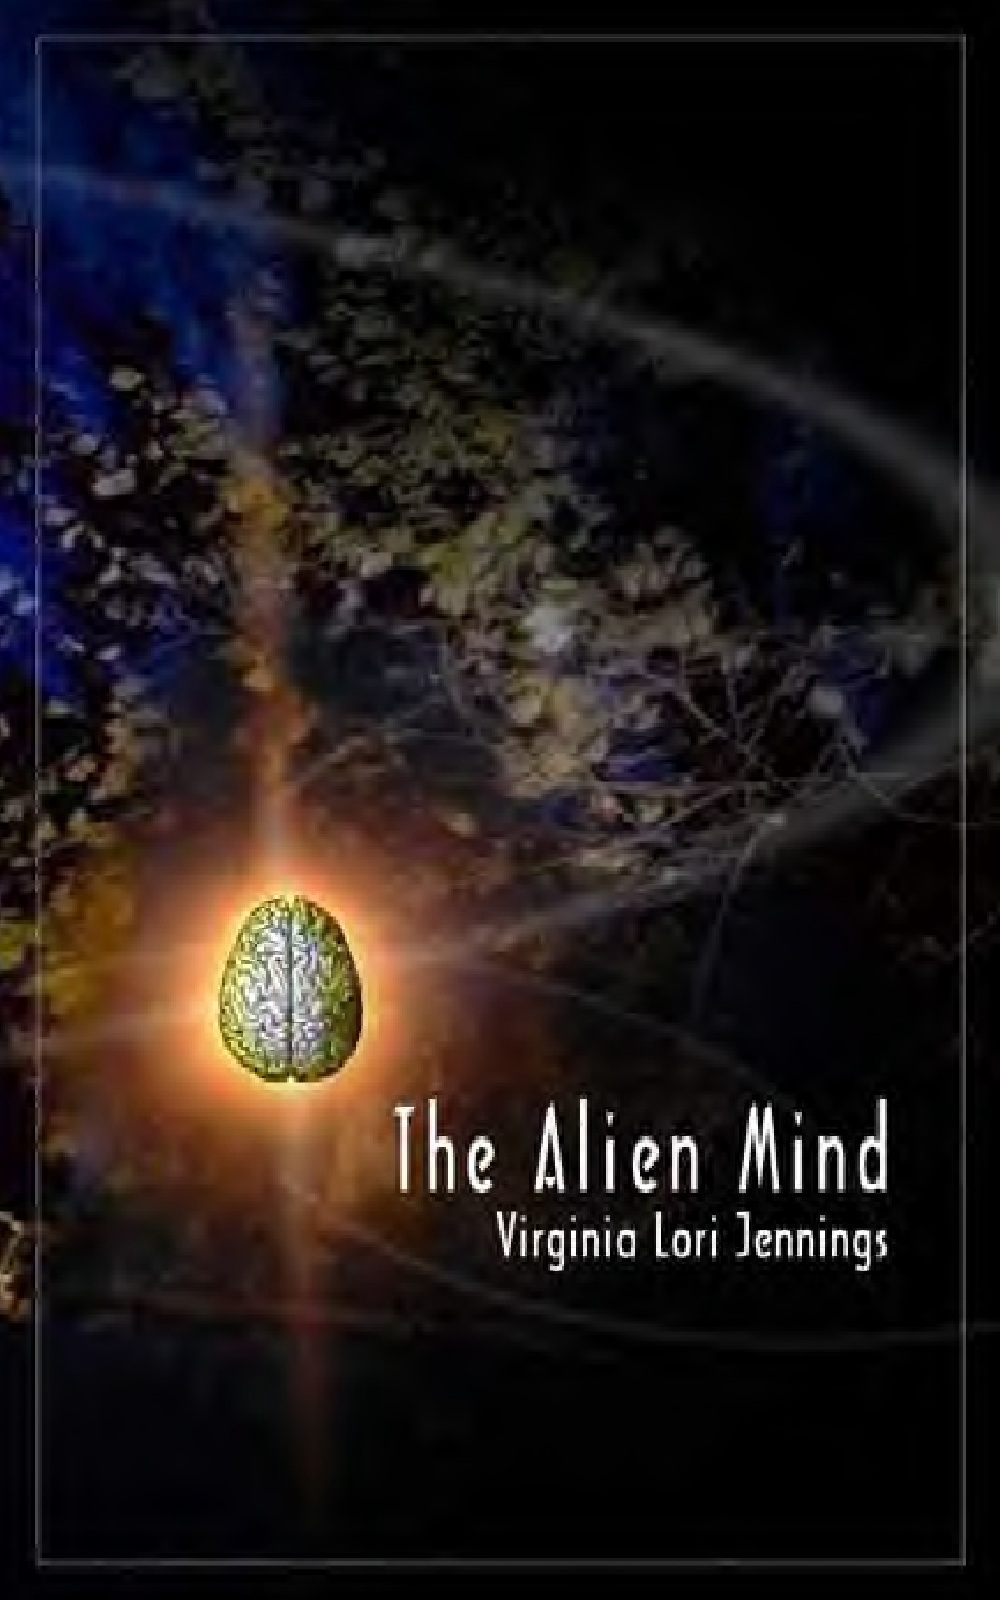 The Alien Mind